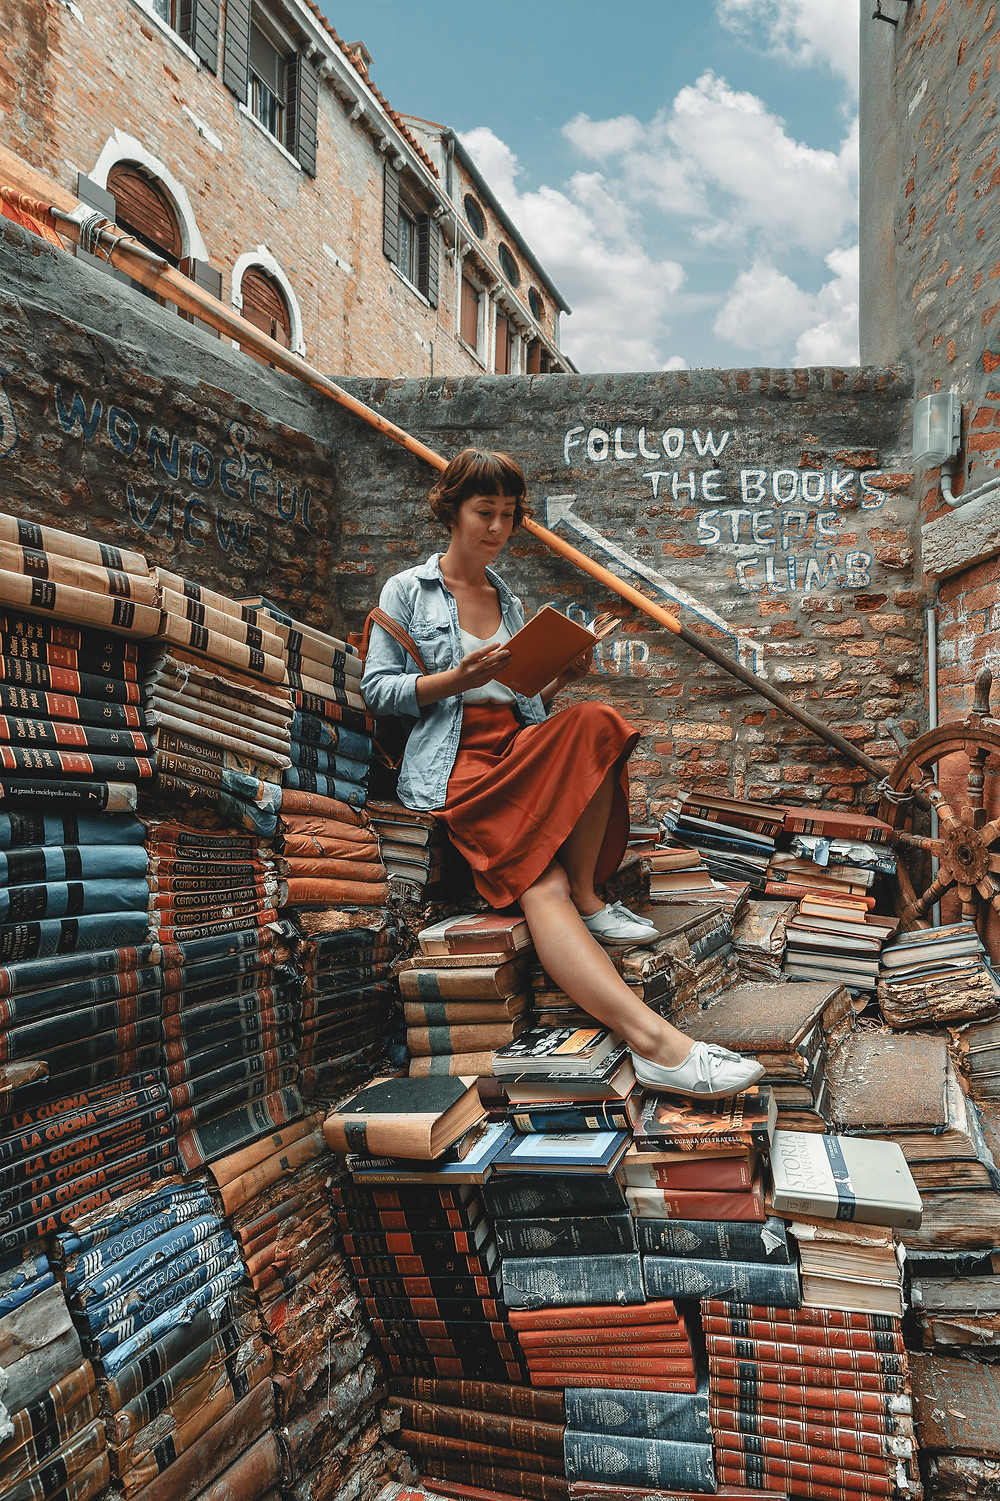 Young woman reading on a pile a books